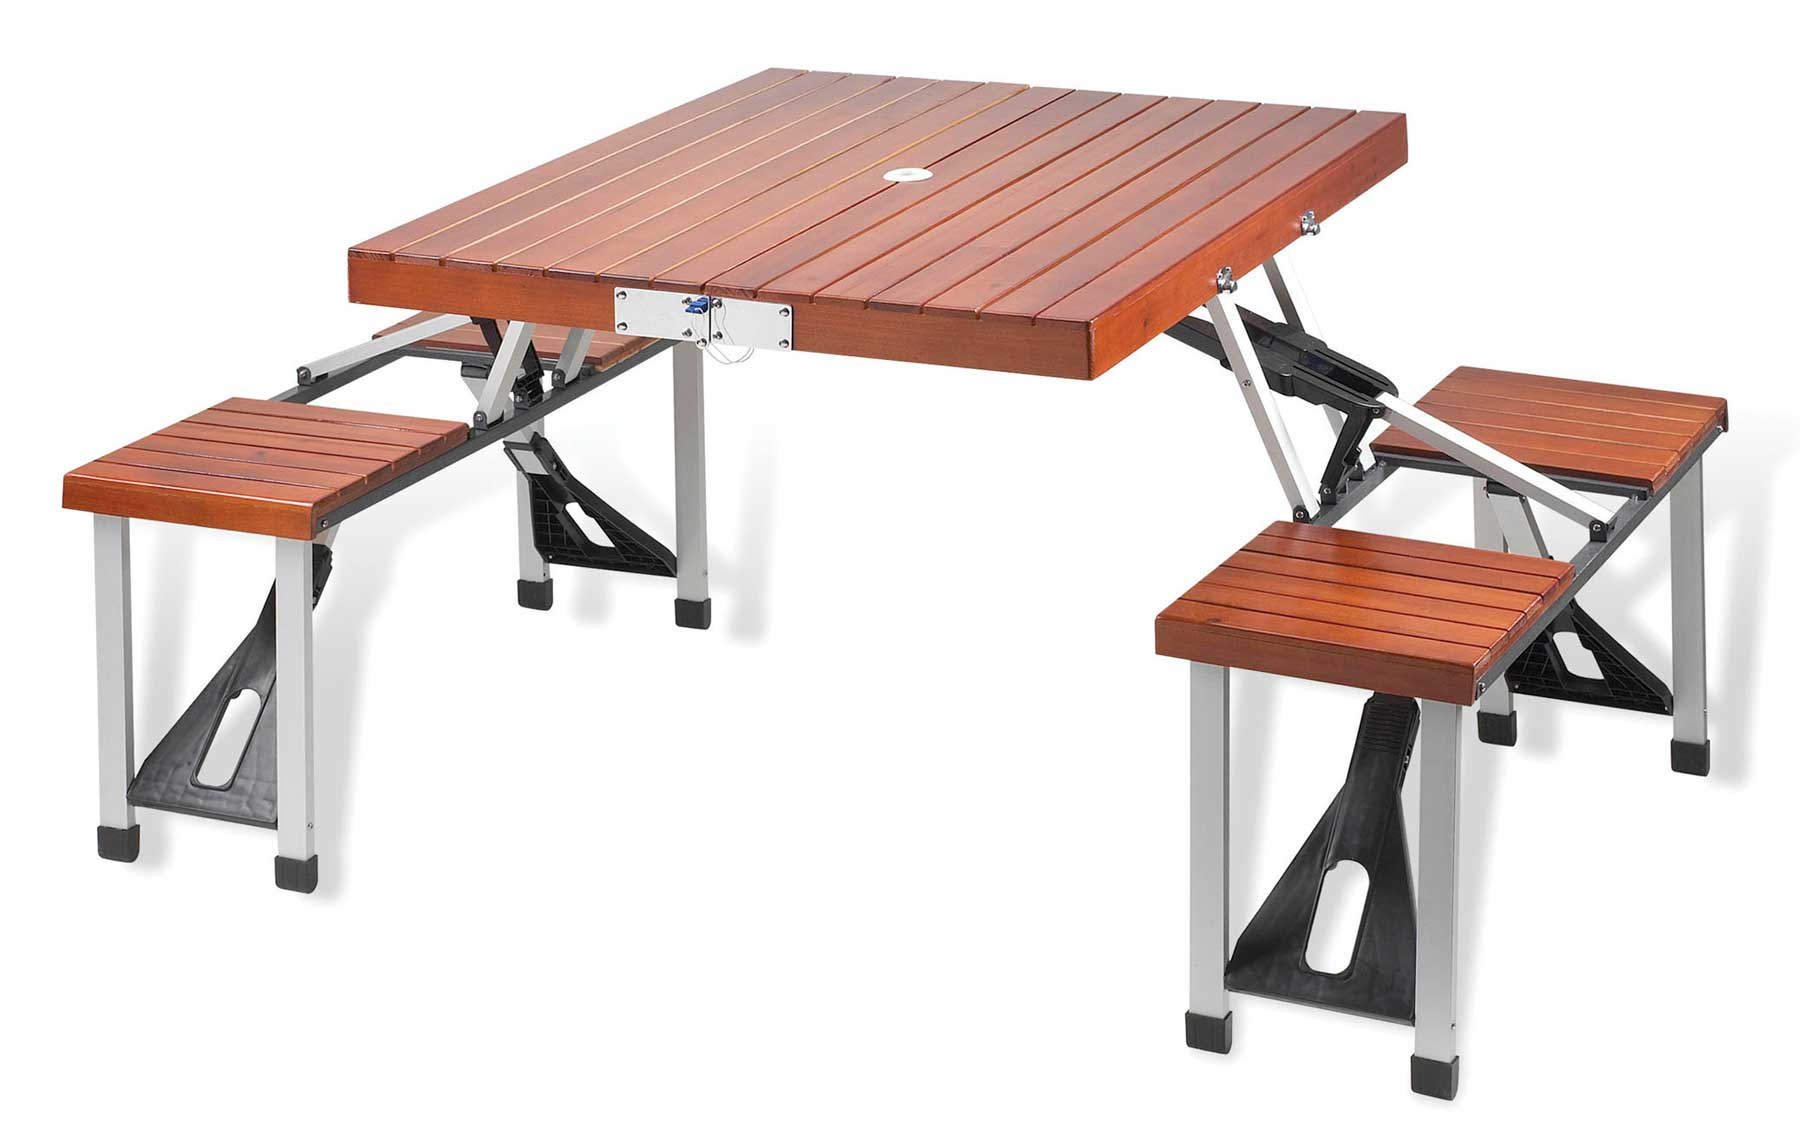 Folding Wood Table Design Advantages : Doyle Marine Wooden Picnic Folding Table from office-turn.com size 1800 x 1141 jpeg 91kB